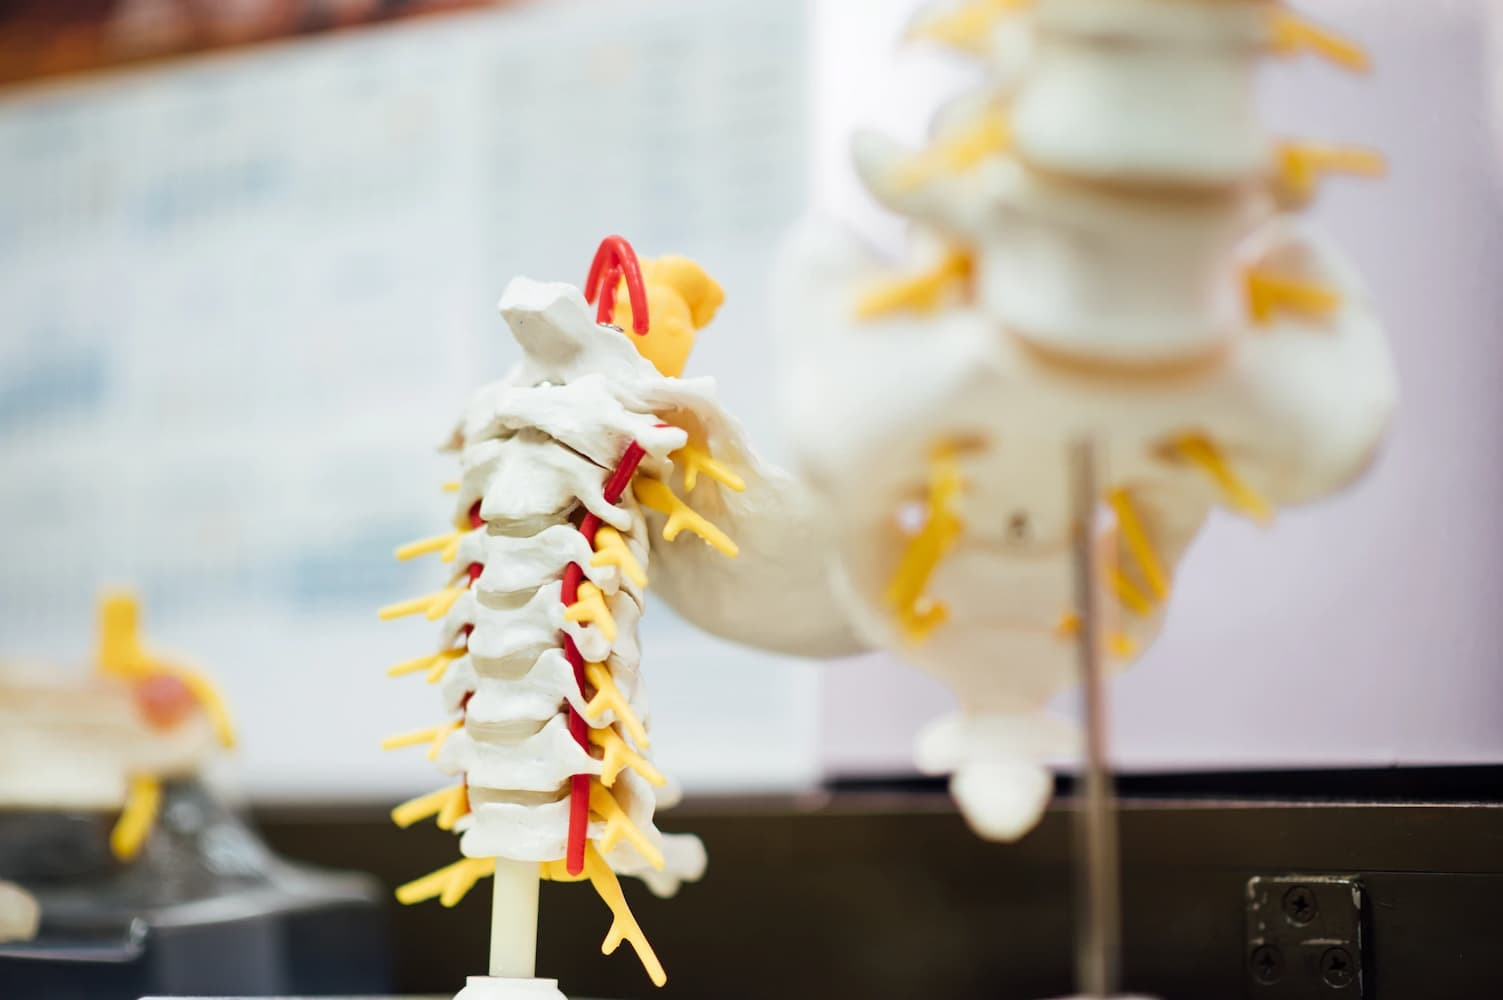 Better Access for People With Spinal Cord Injuries